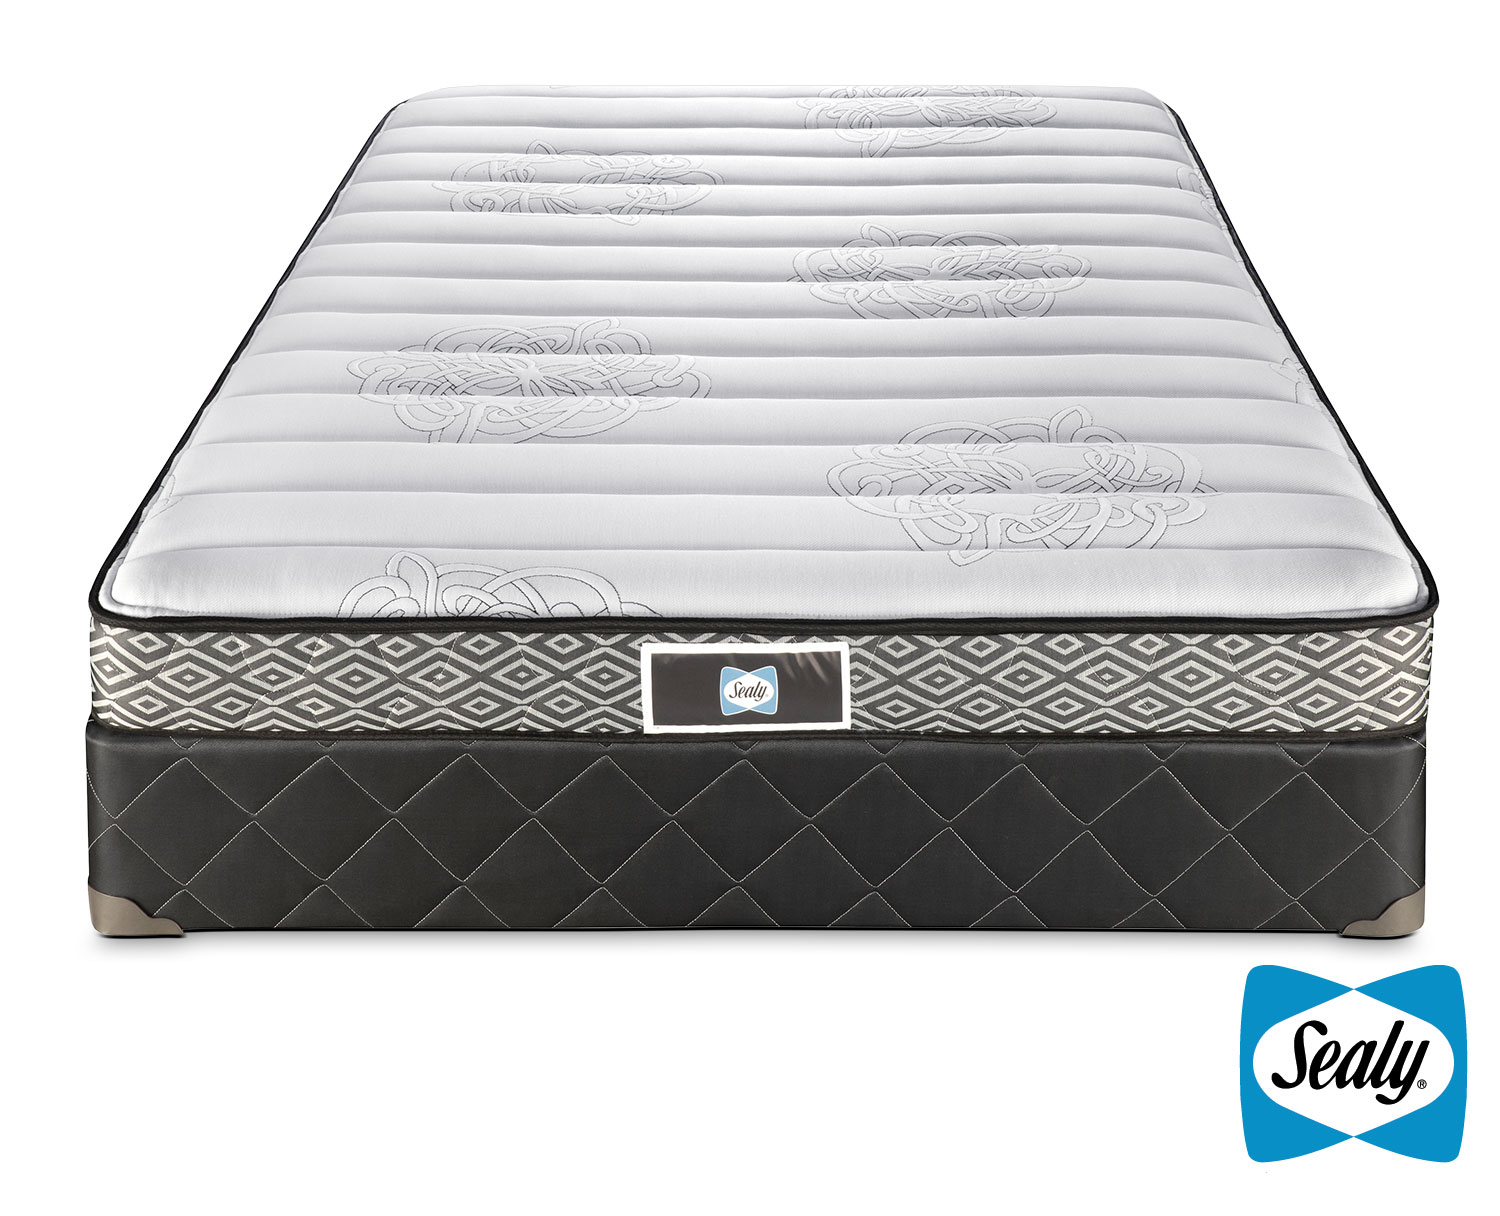 Matelas Signature Stearns And Foster Double Pillow Top Mattress Stearns